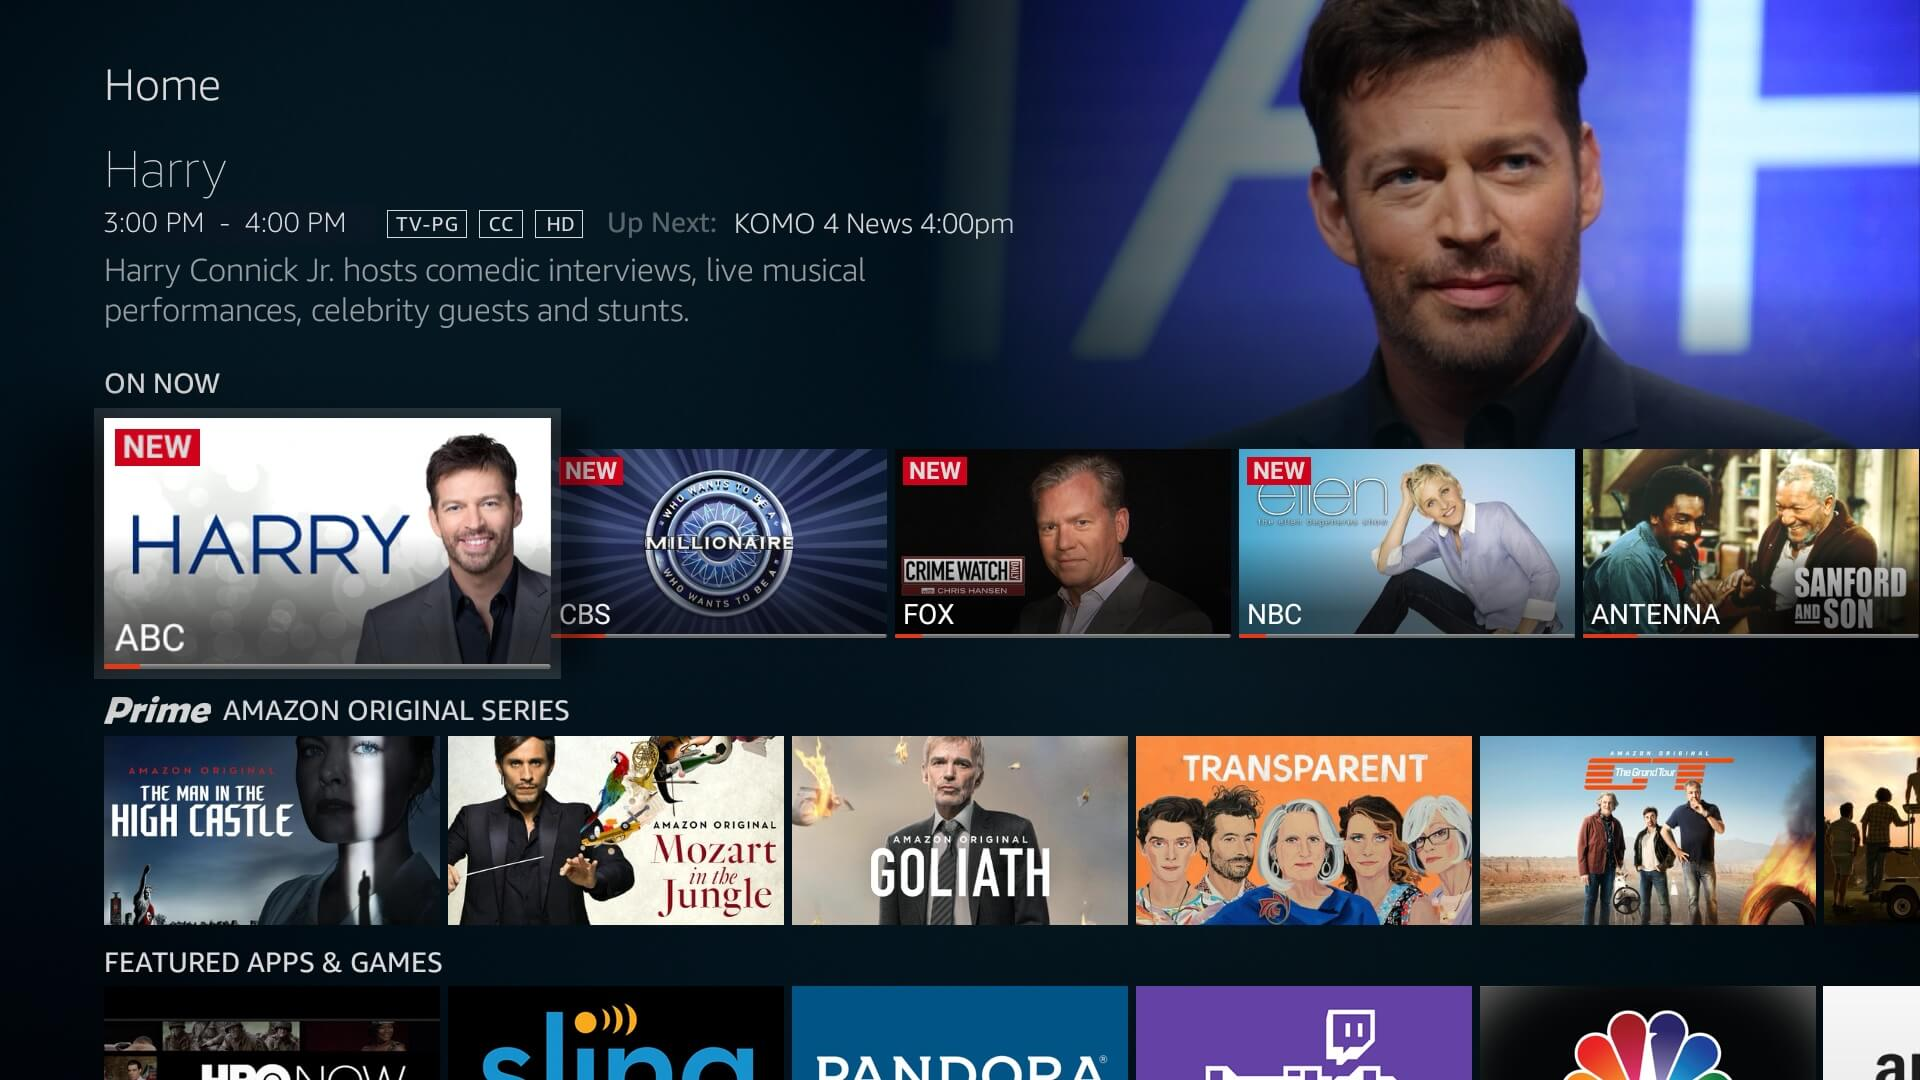 The live TV guide on the Westinghouse 4k UHD Smart TV - Amazon Fire TV edition.